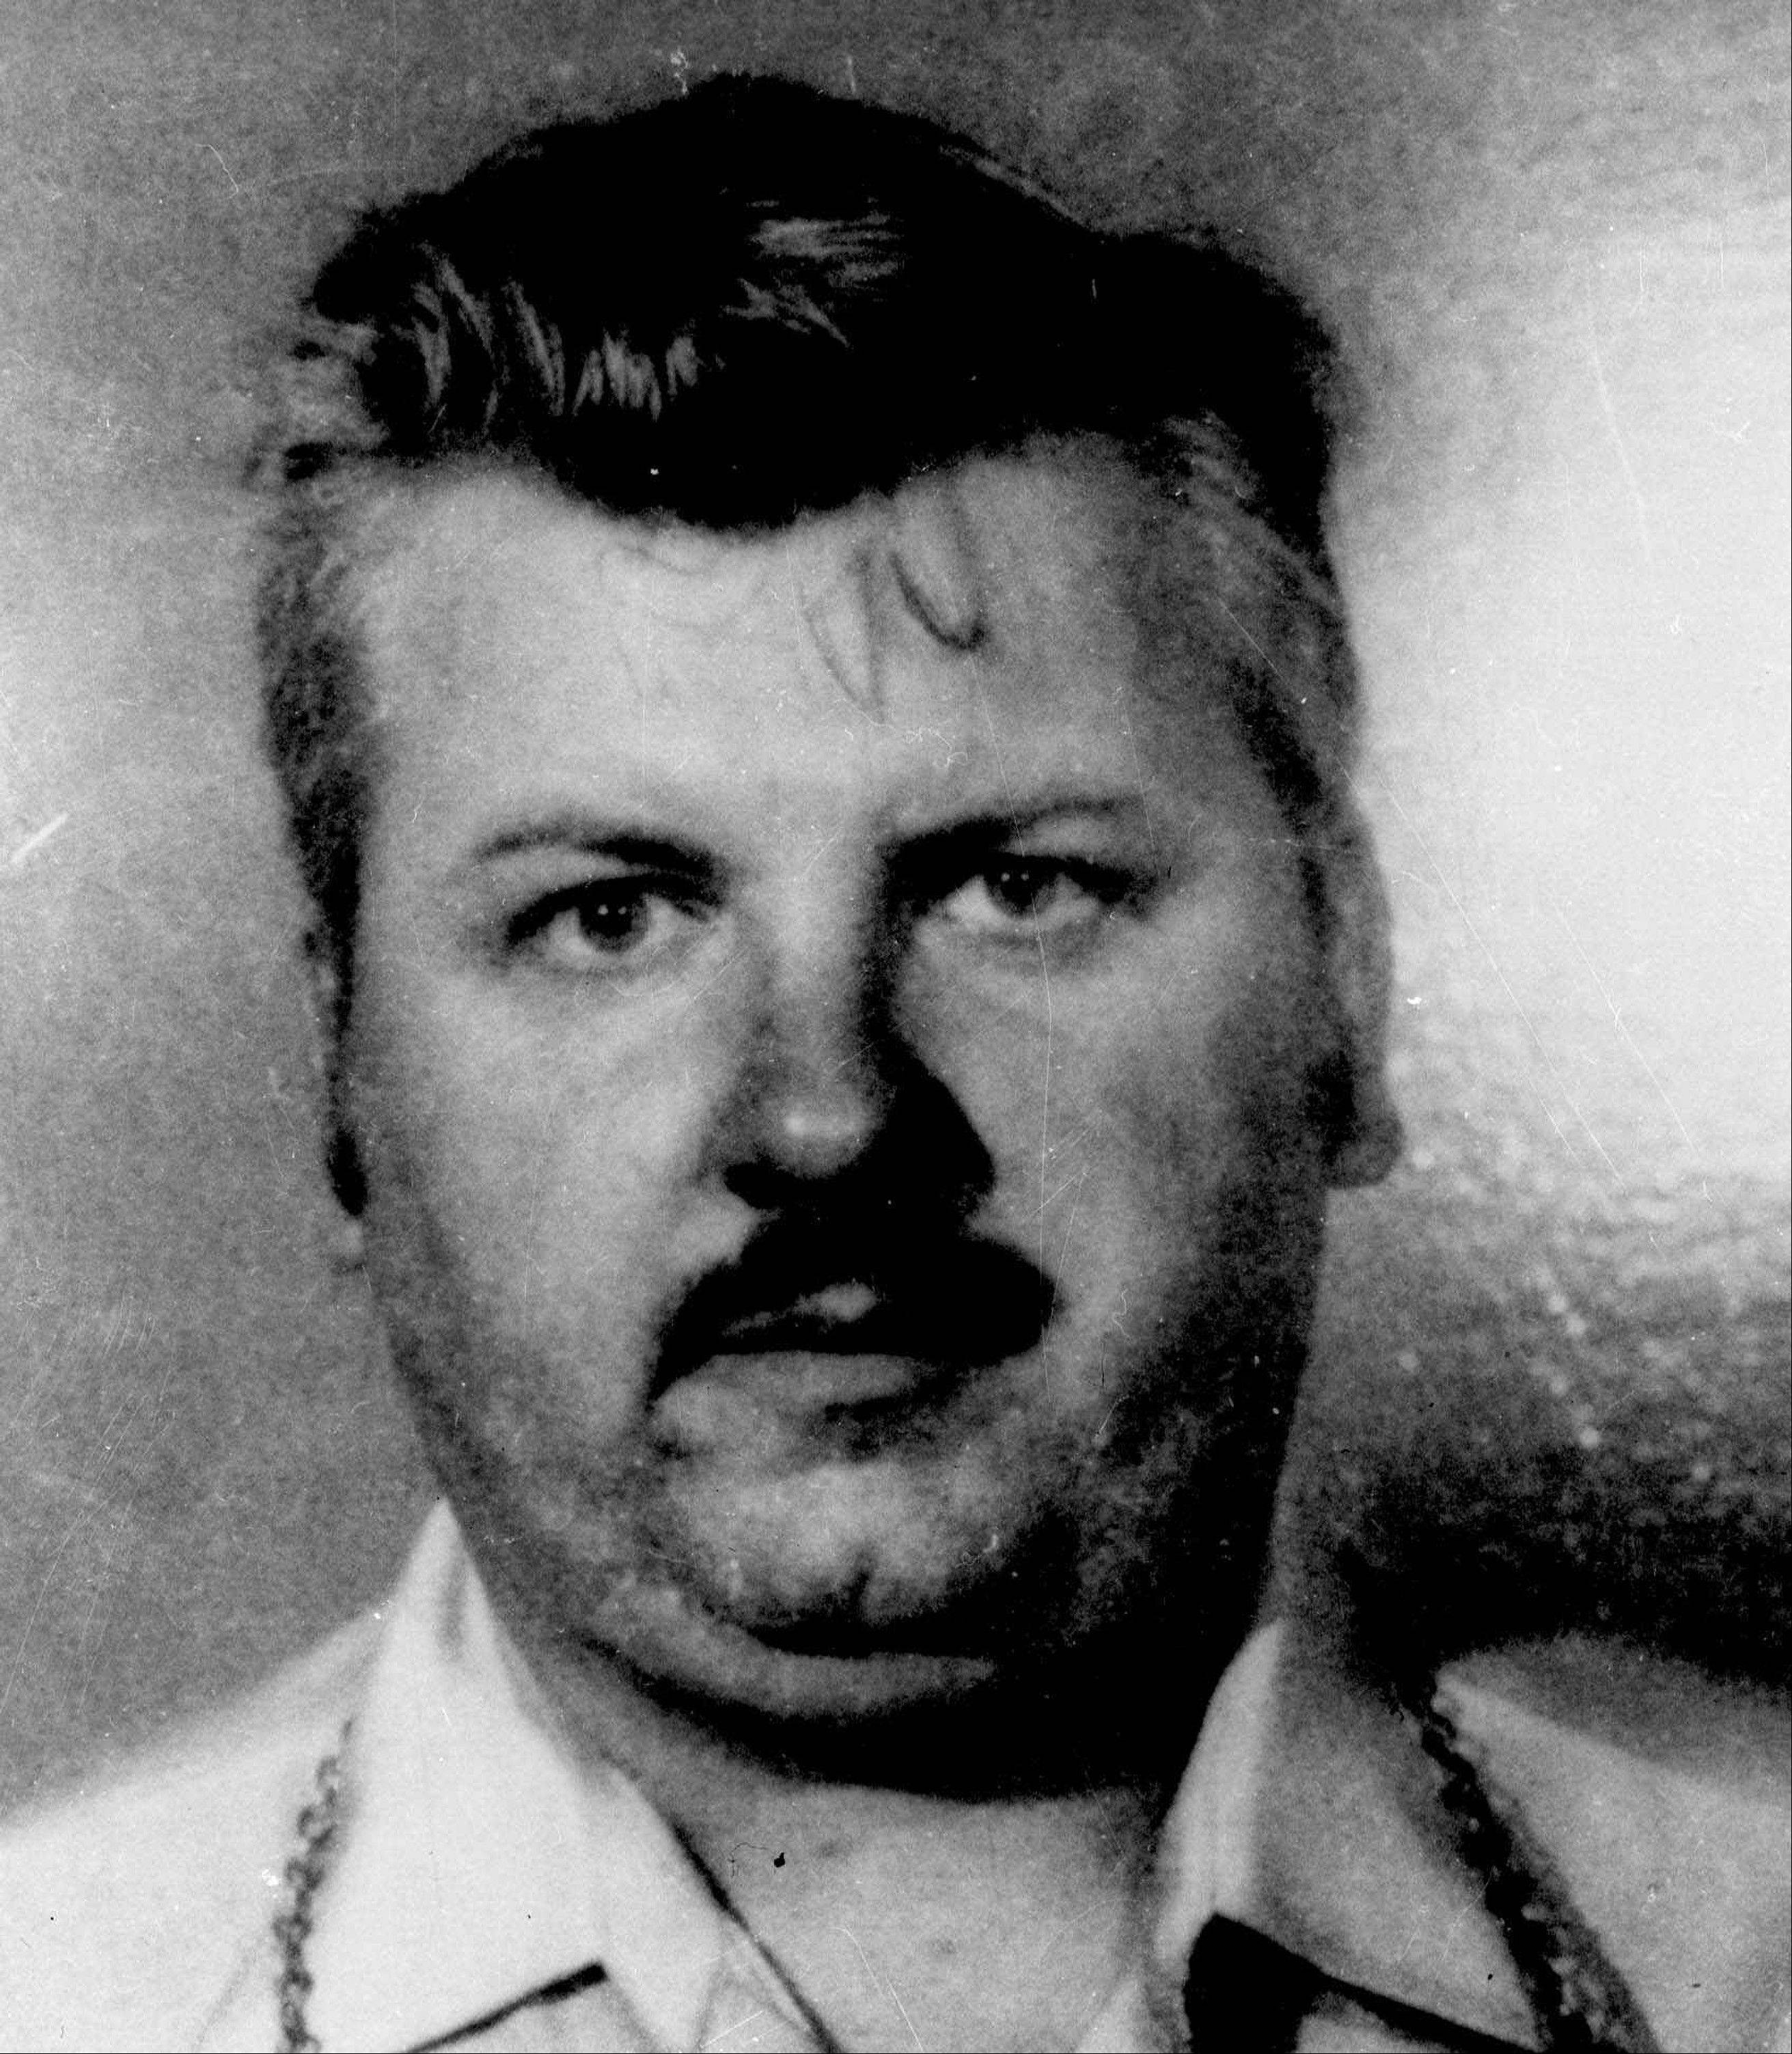 Presumed Gacy victim found alive in Montana